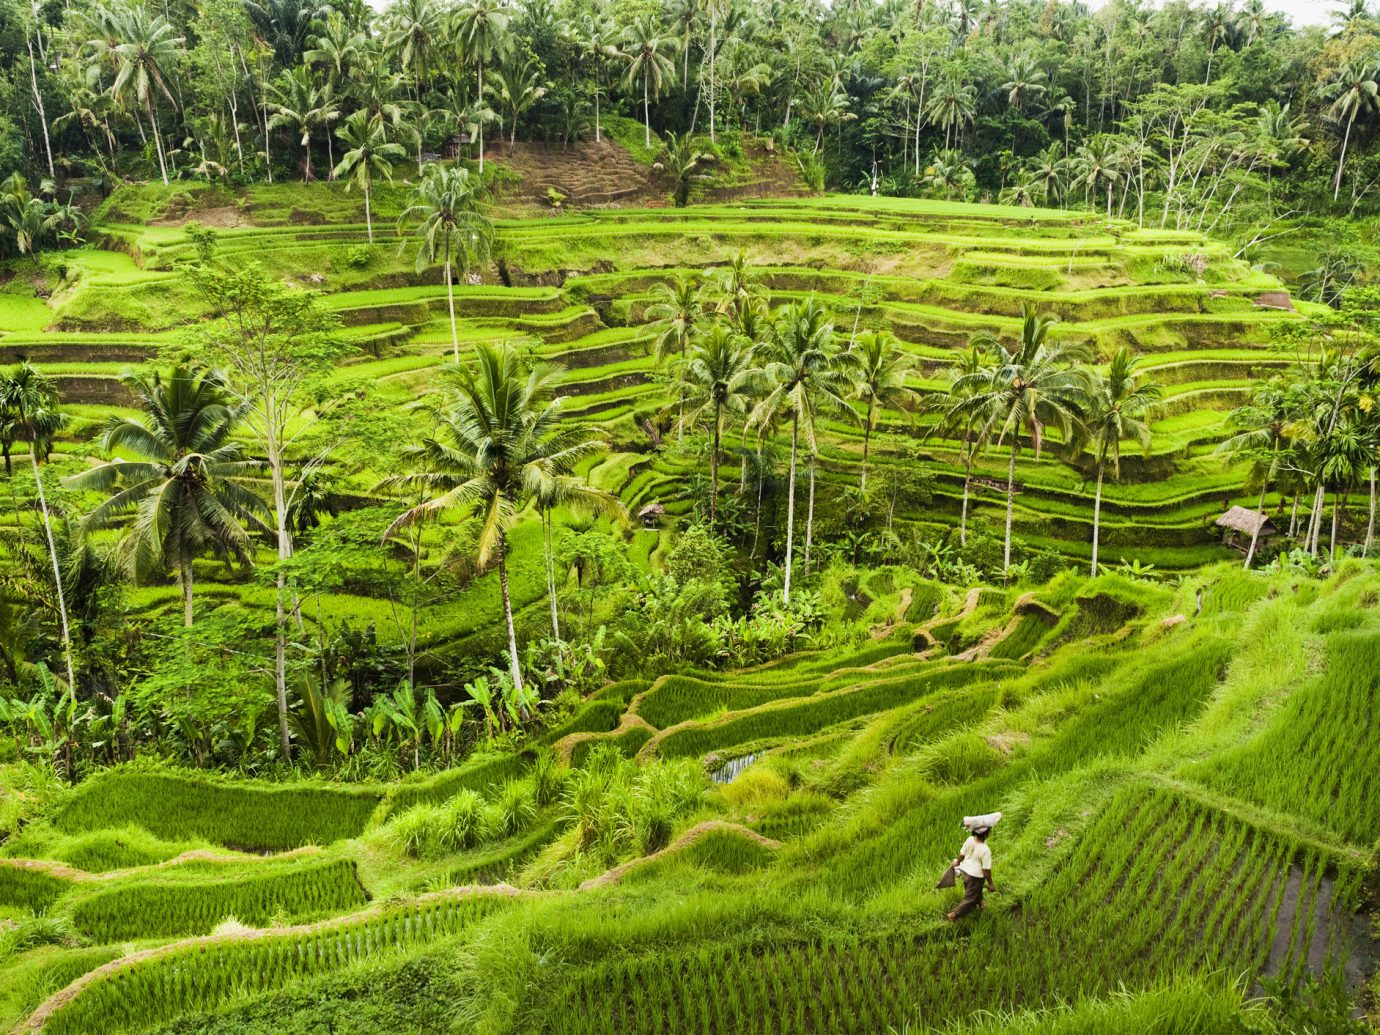 Jetsetter Guides grass outdoor tree field Terrace paddy field vegetation geographical feature agriculture green plantation ecosystem botany landscape Nature plant rural area Garden soil botanical garden Jungle plateau pasture lush